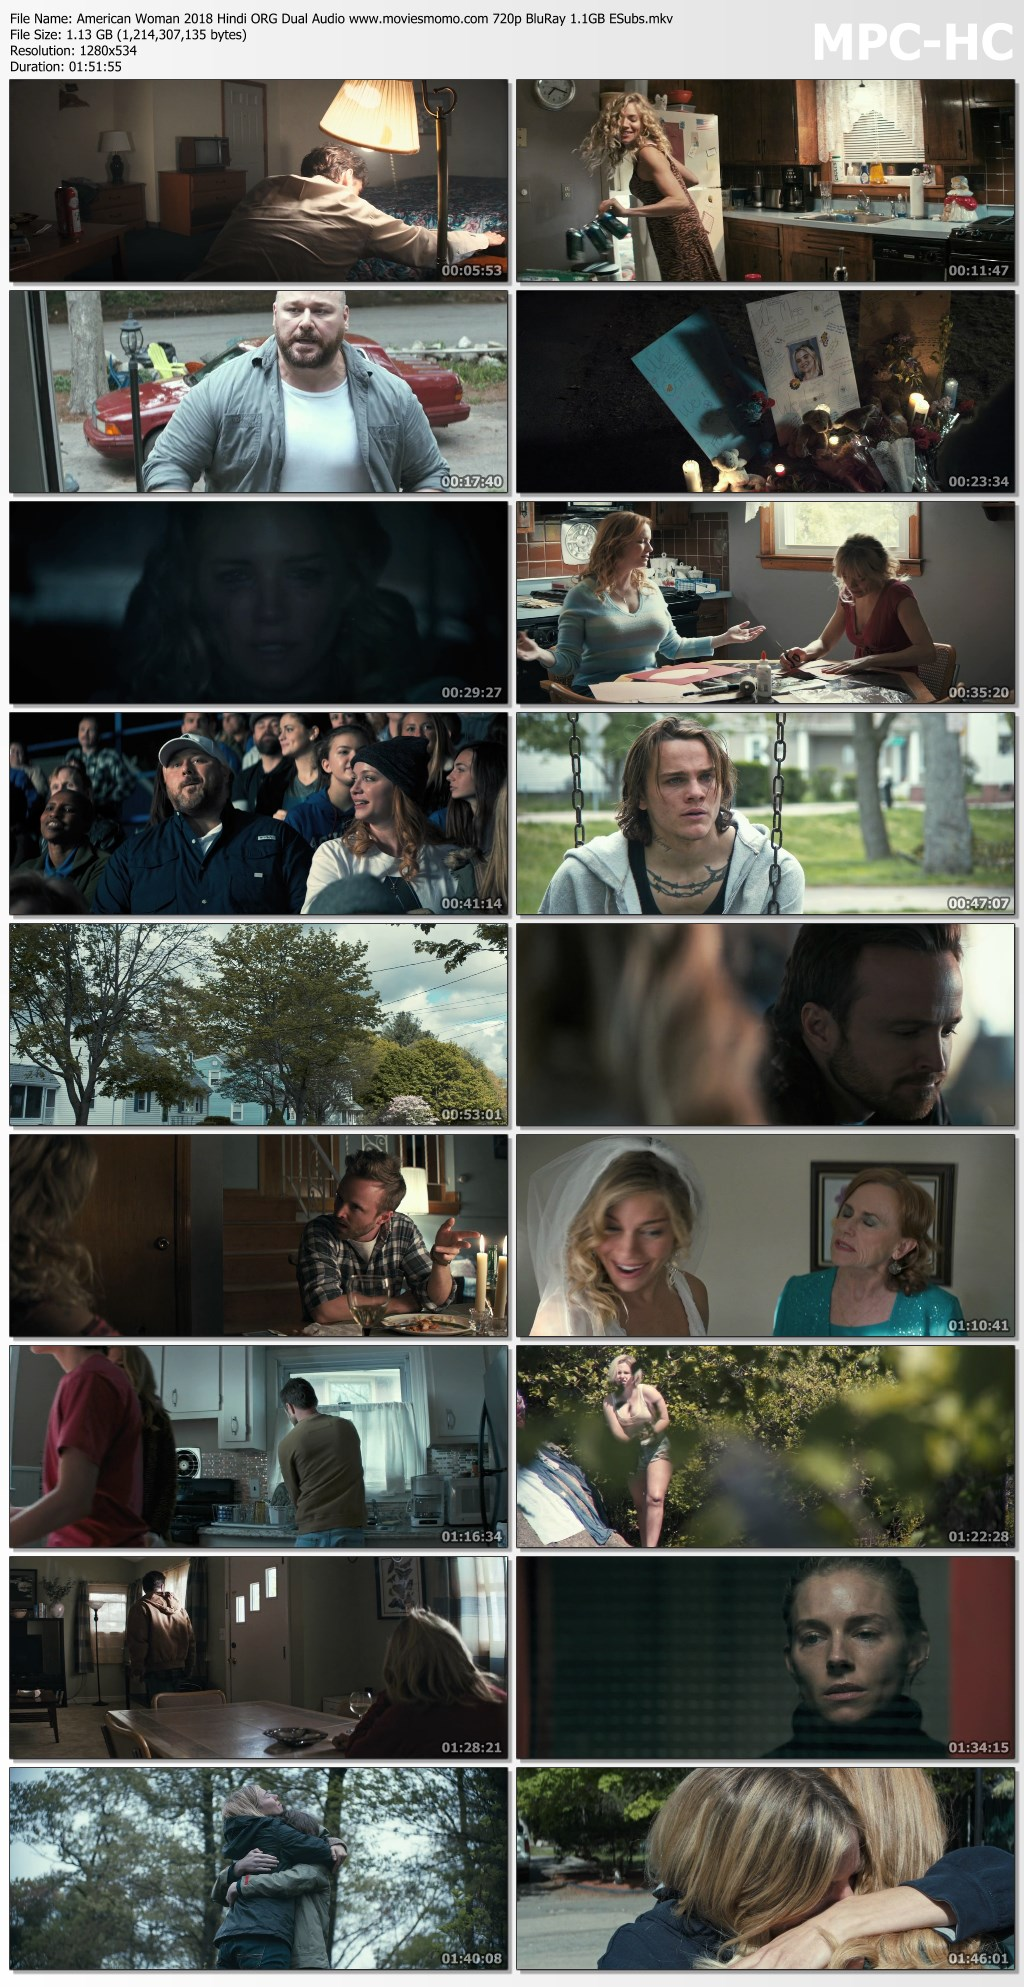 AmericanWoman2018HindiORGDualAudiowww.moviesmomo.com720pBluRay1.1GBESubs.mkv thumbs0b9c2 - American Woman 2018 Hindi ORG Dual Audio 480p BluRay 400MB ESubs x264 AAC